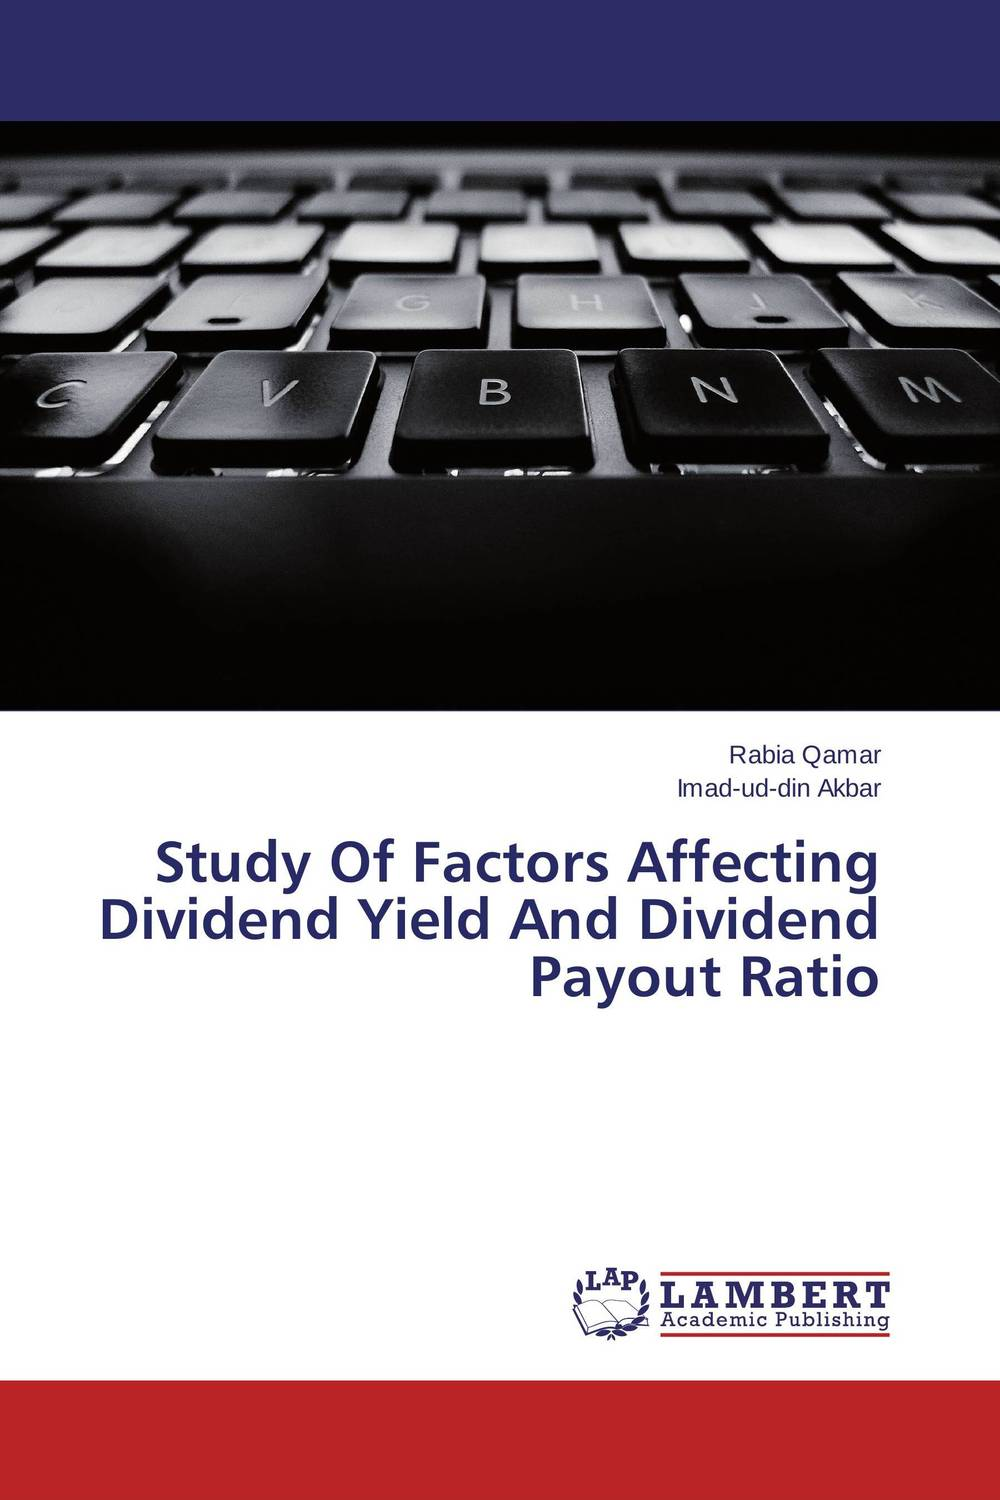 Study Of Factors Affecting Dividend Yield And Dividend Payout Ratio eric lowitt the future of value how sustainability creates value through competitive differentiation